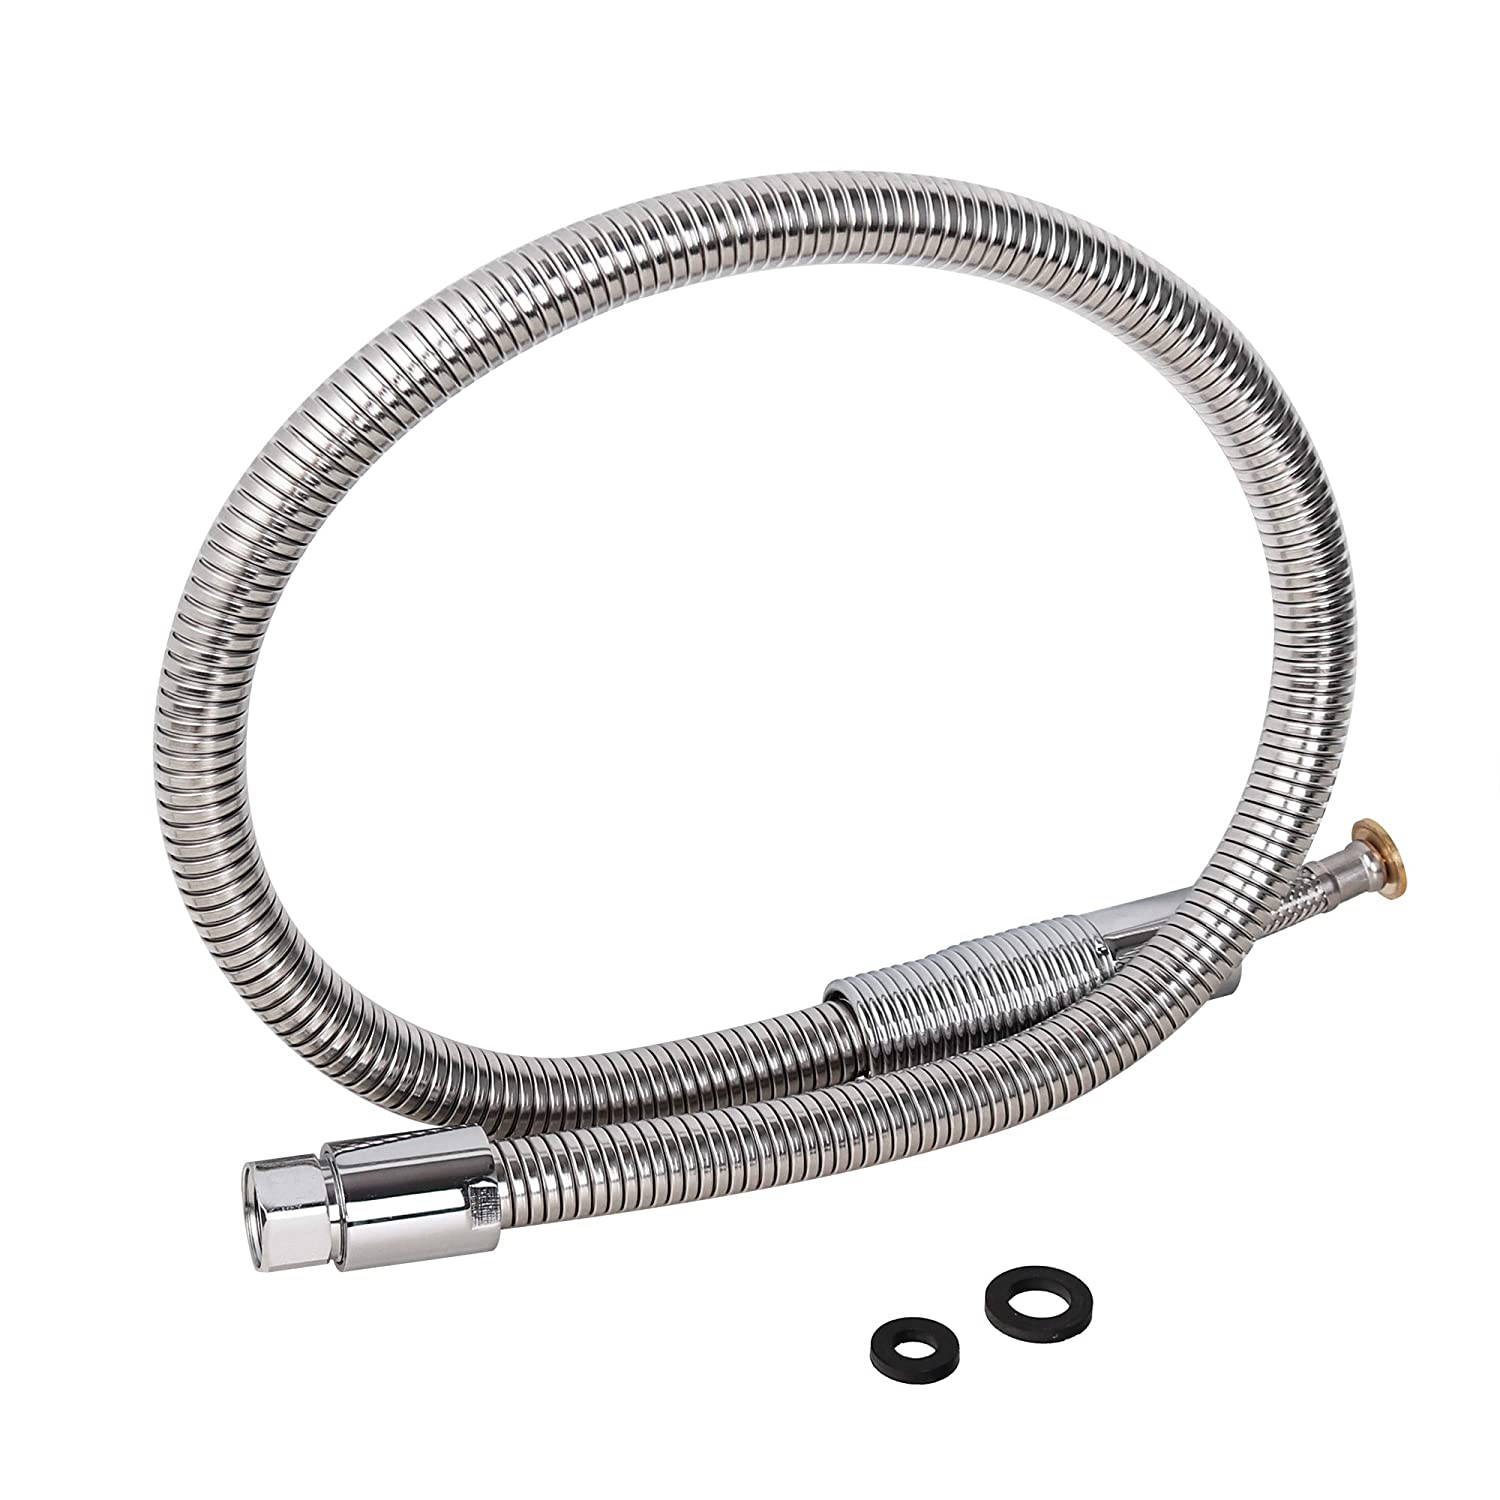 "Commercial Dishwasher Hose Replacement,Pull-Down Kitchen Tap Sink Faucet Hose Stainless Steel 1/2"" Length 37"" Chrome"